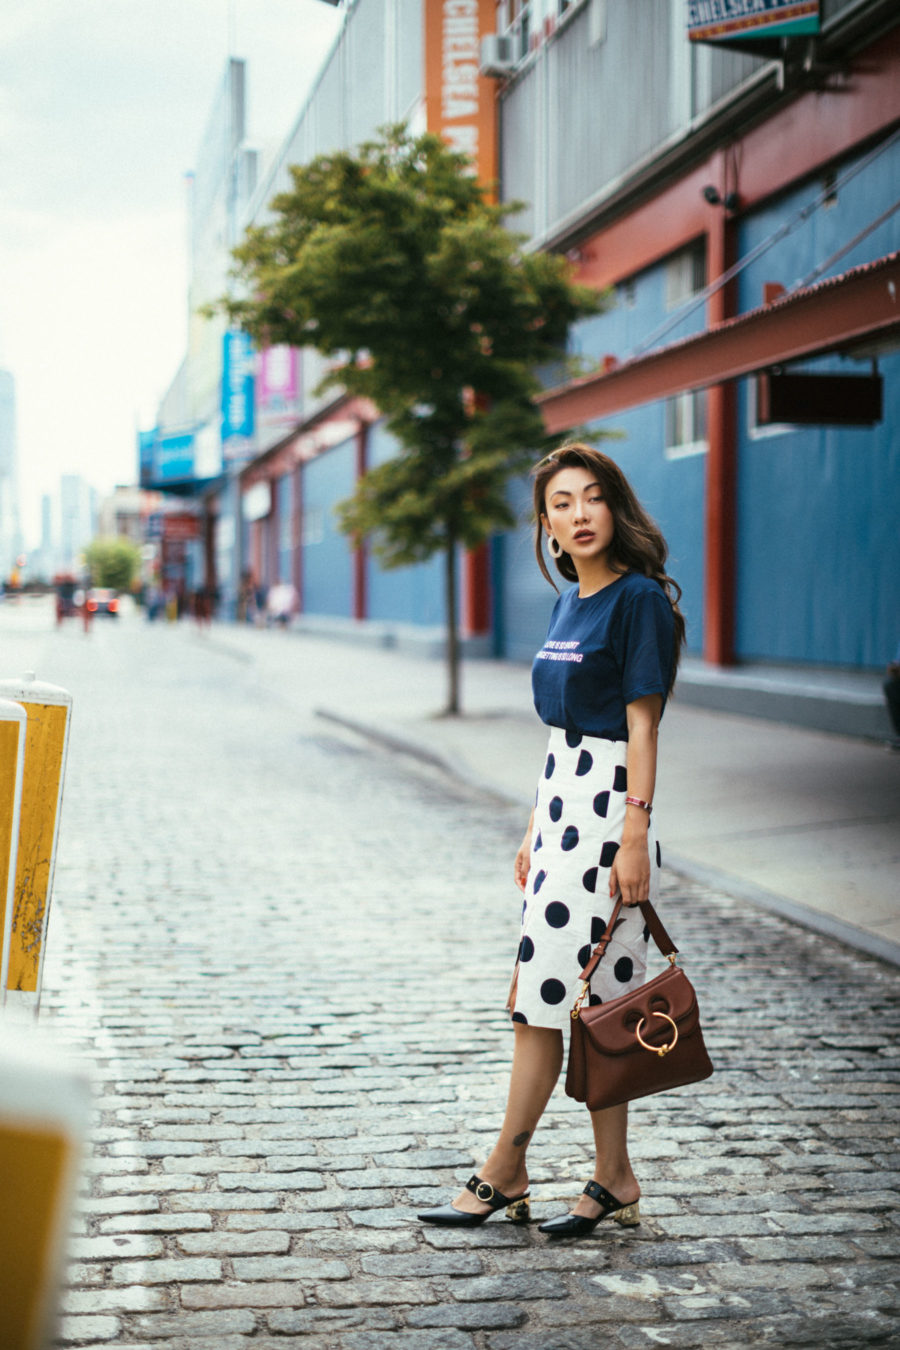 Stylish but Office Friendly Summer Outfit Ideas - polka dot skirt, pencil skirt, office outfit ideas // Notjessfashion.com